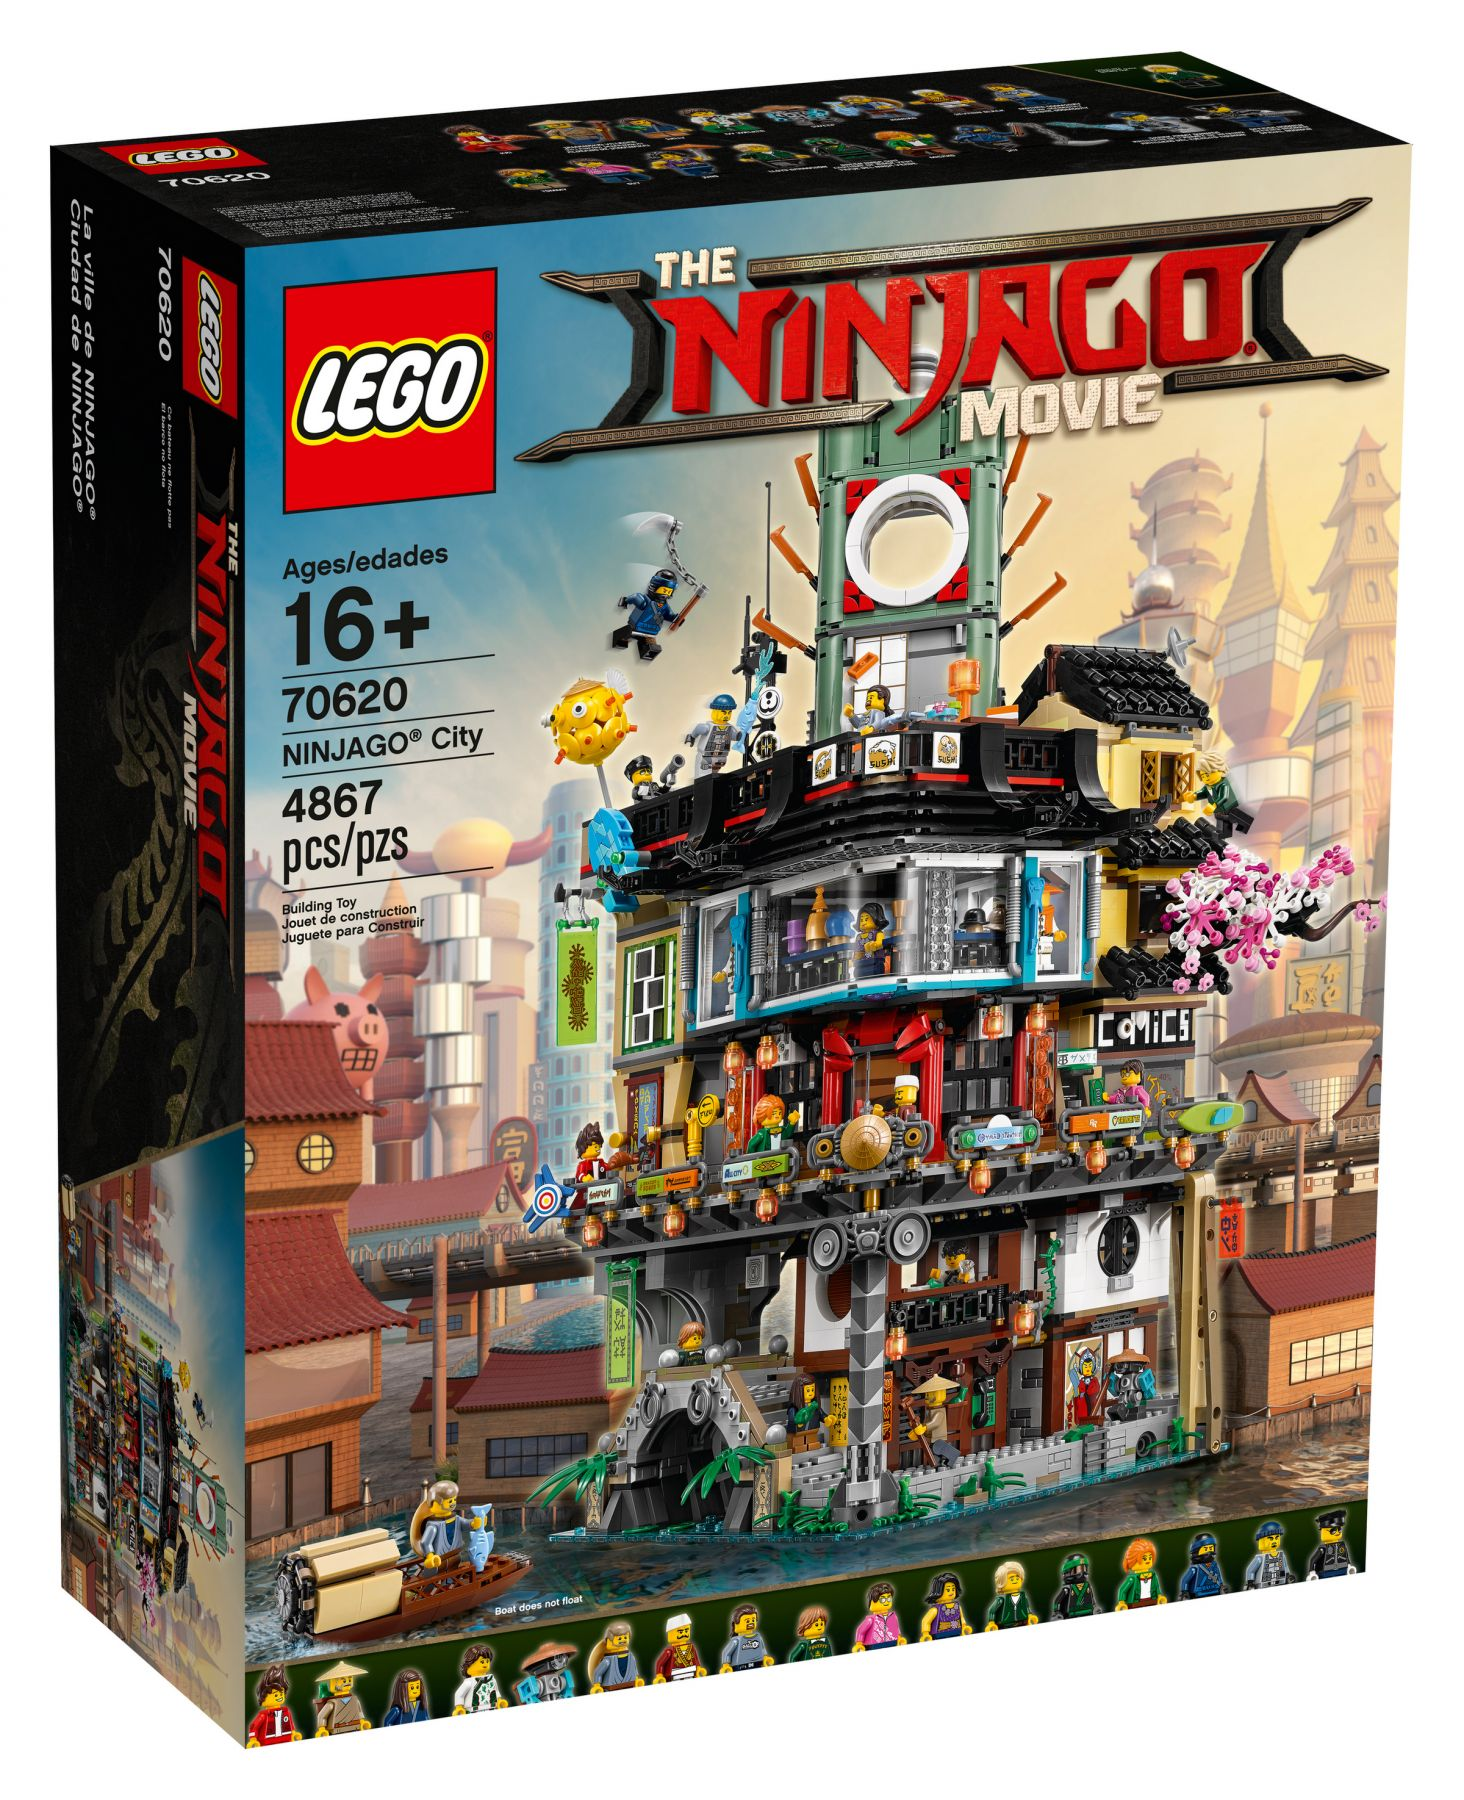 LEGO The LEGO Ninjago Movie 70620 Ninjago City LEGO_70620_alt1.jpg